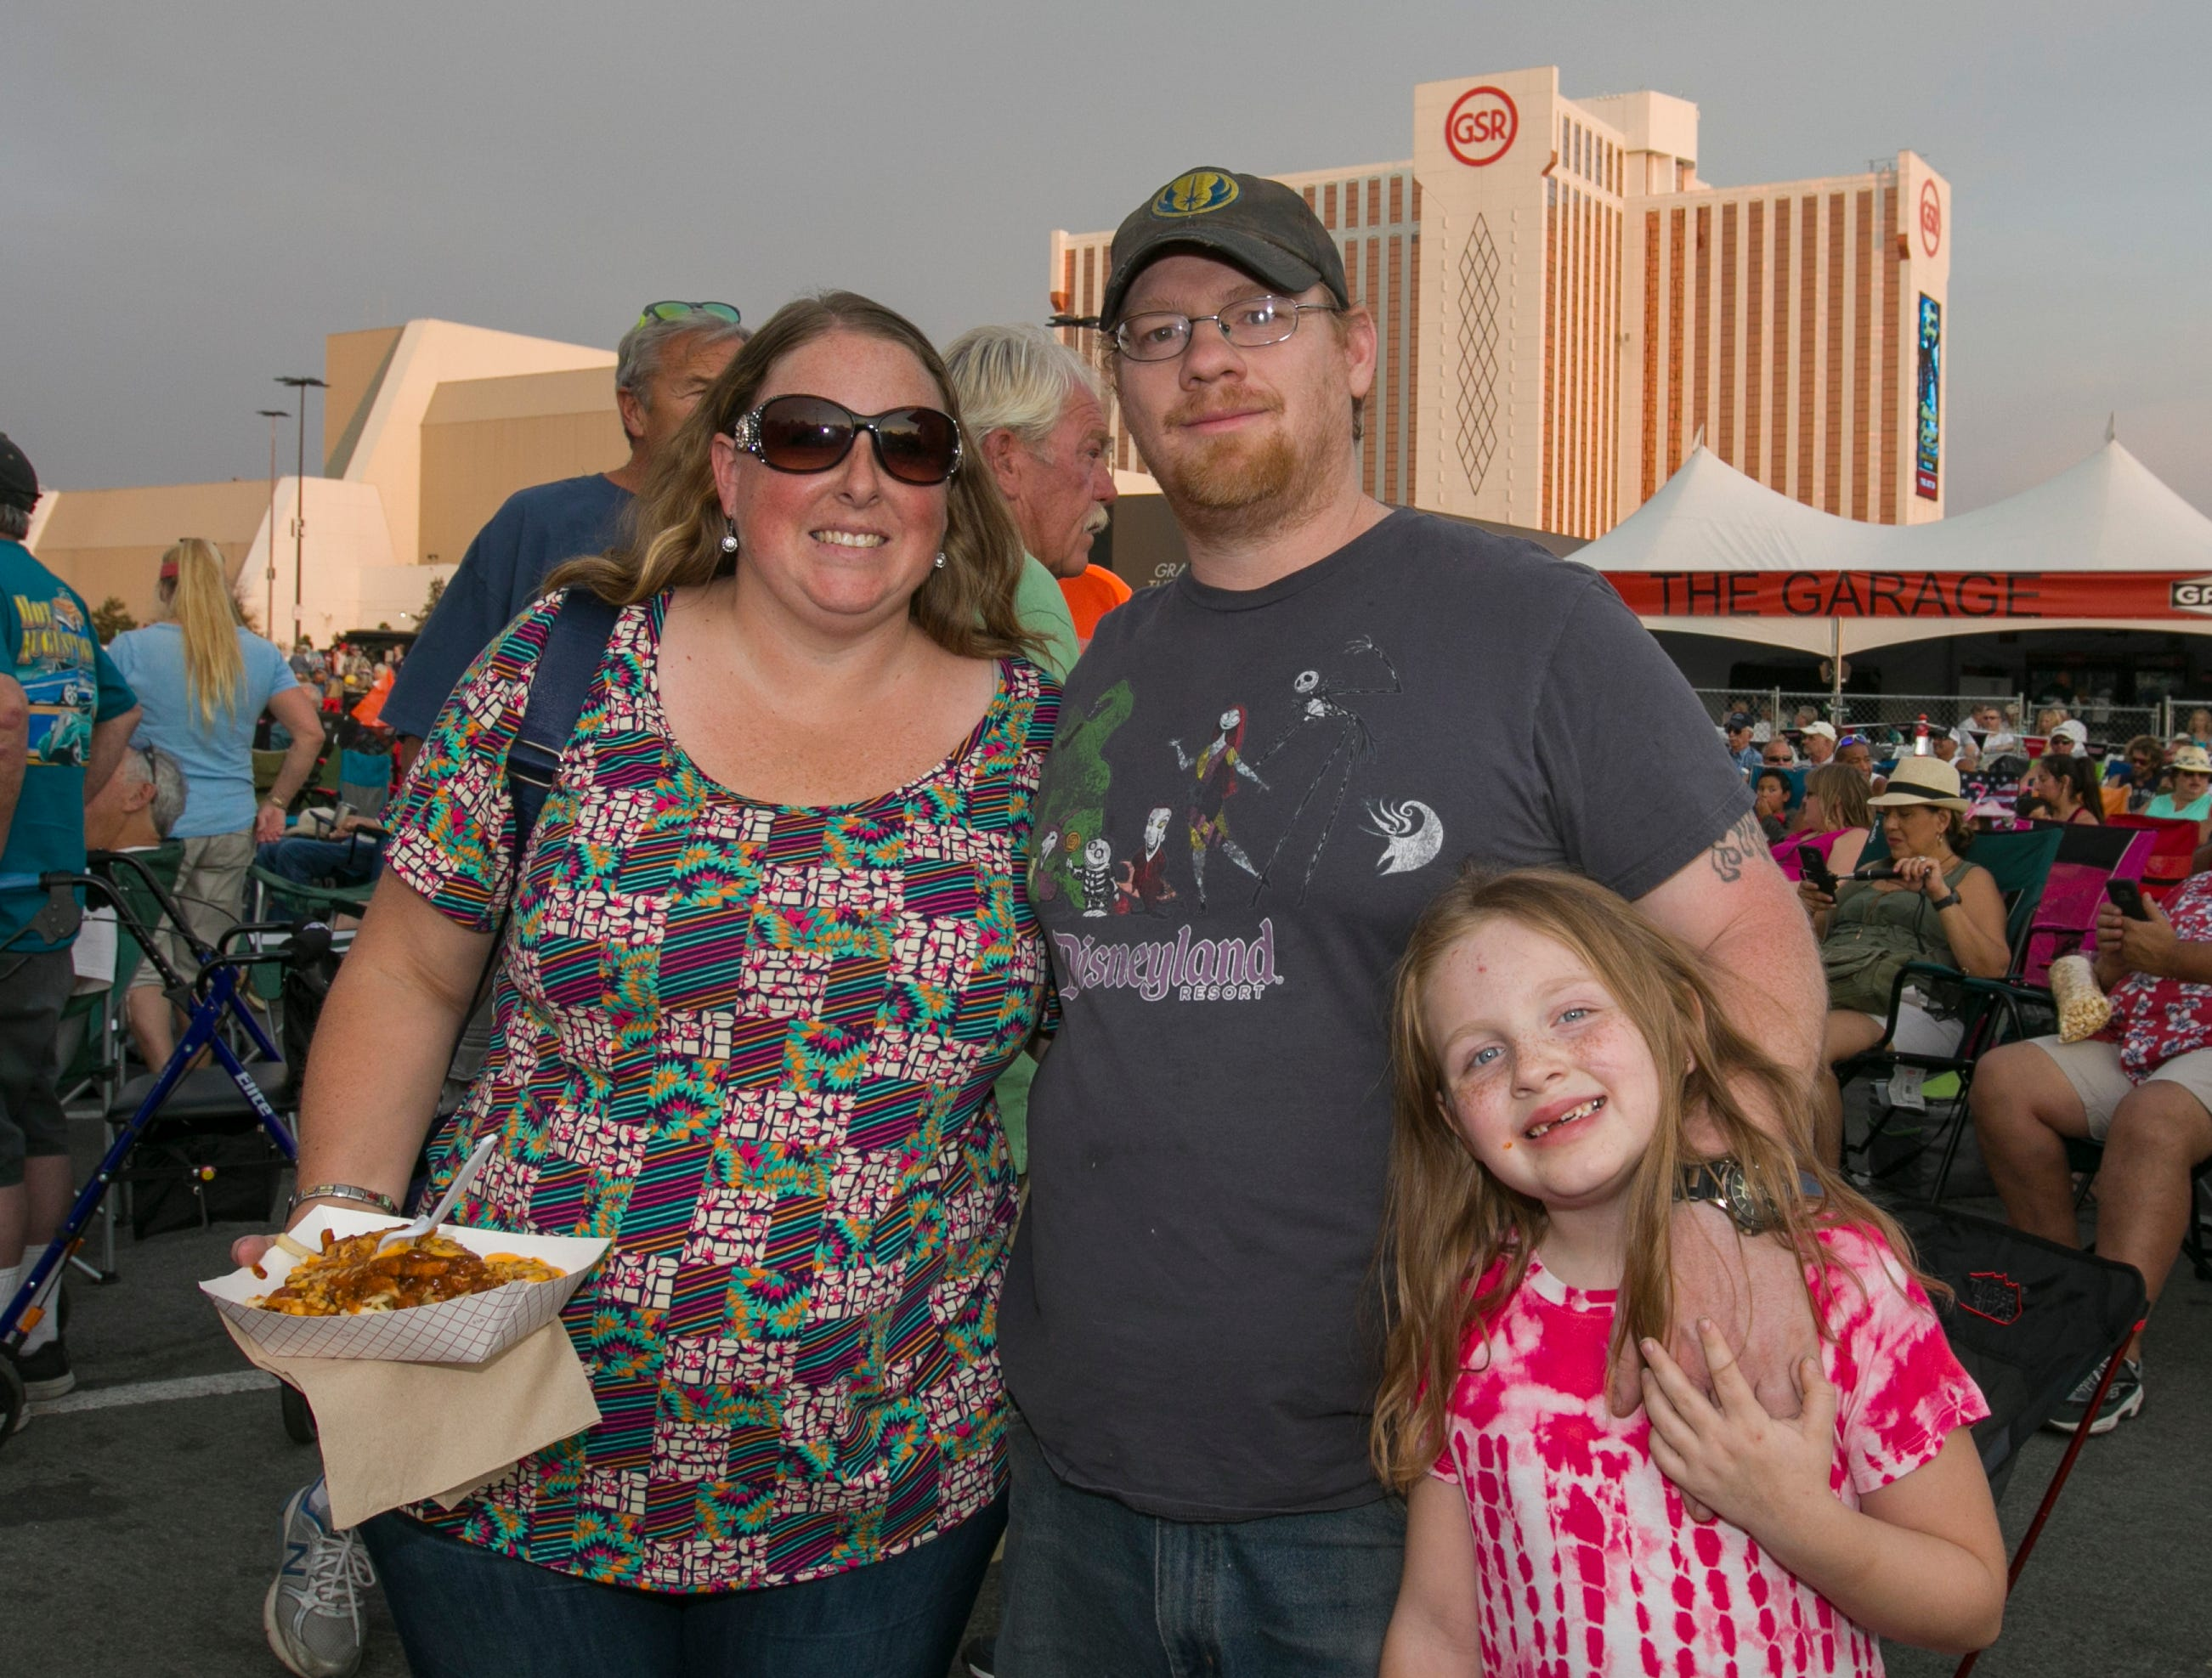 The Francisco family during the Starship Concert during Hot August Nights at the Grand Sierra Resort on Friday, August 10, 2018.